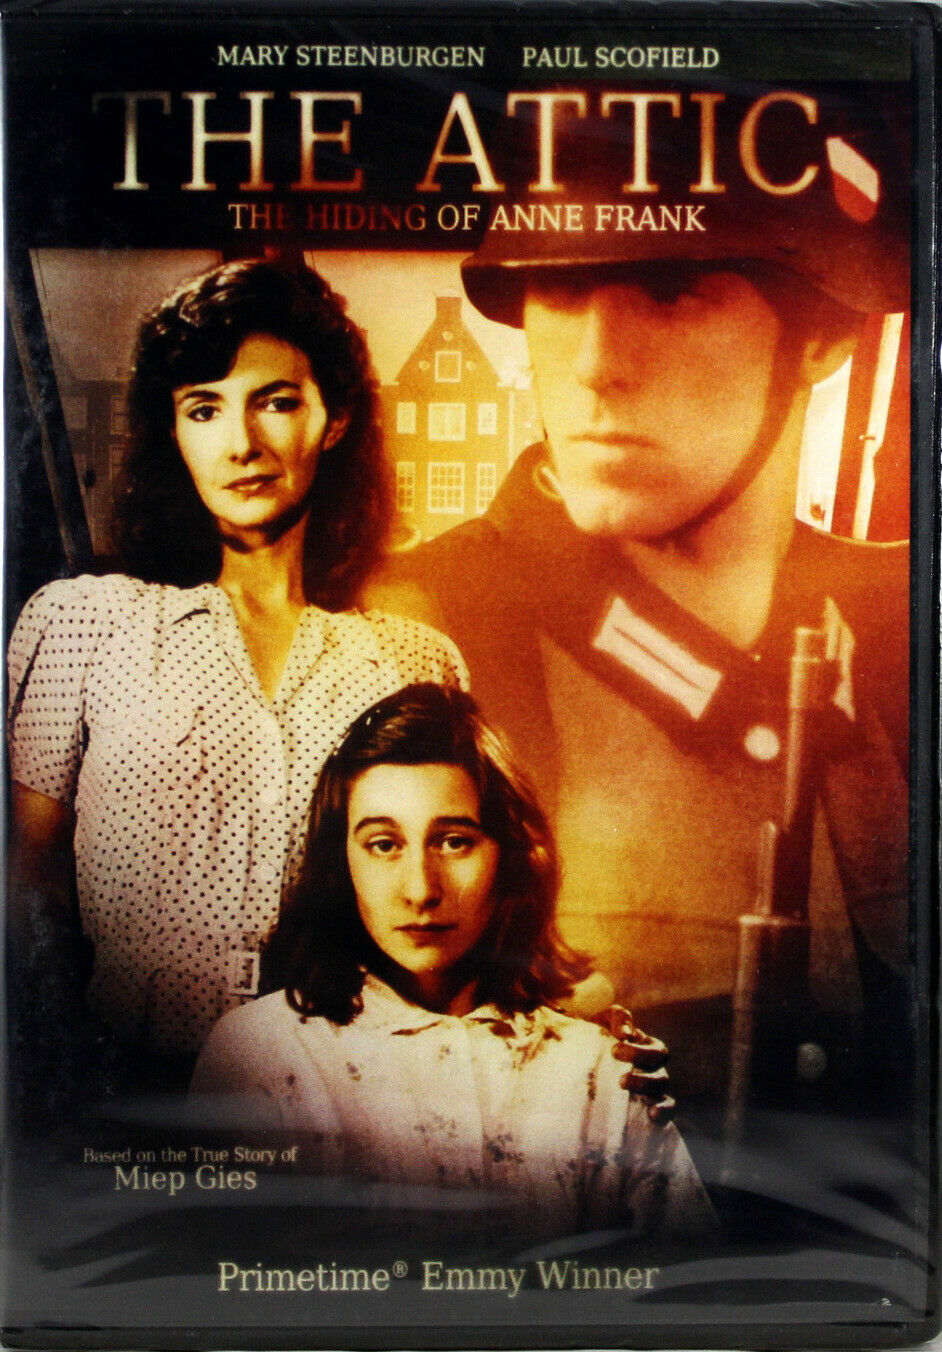 Primary image for The Attic: The Hiding Of Anne Frank NEW DVD Mary Steenburgen Paul Scofield